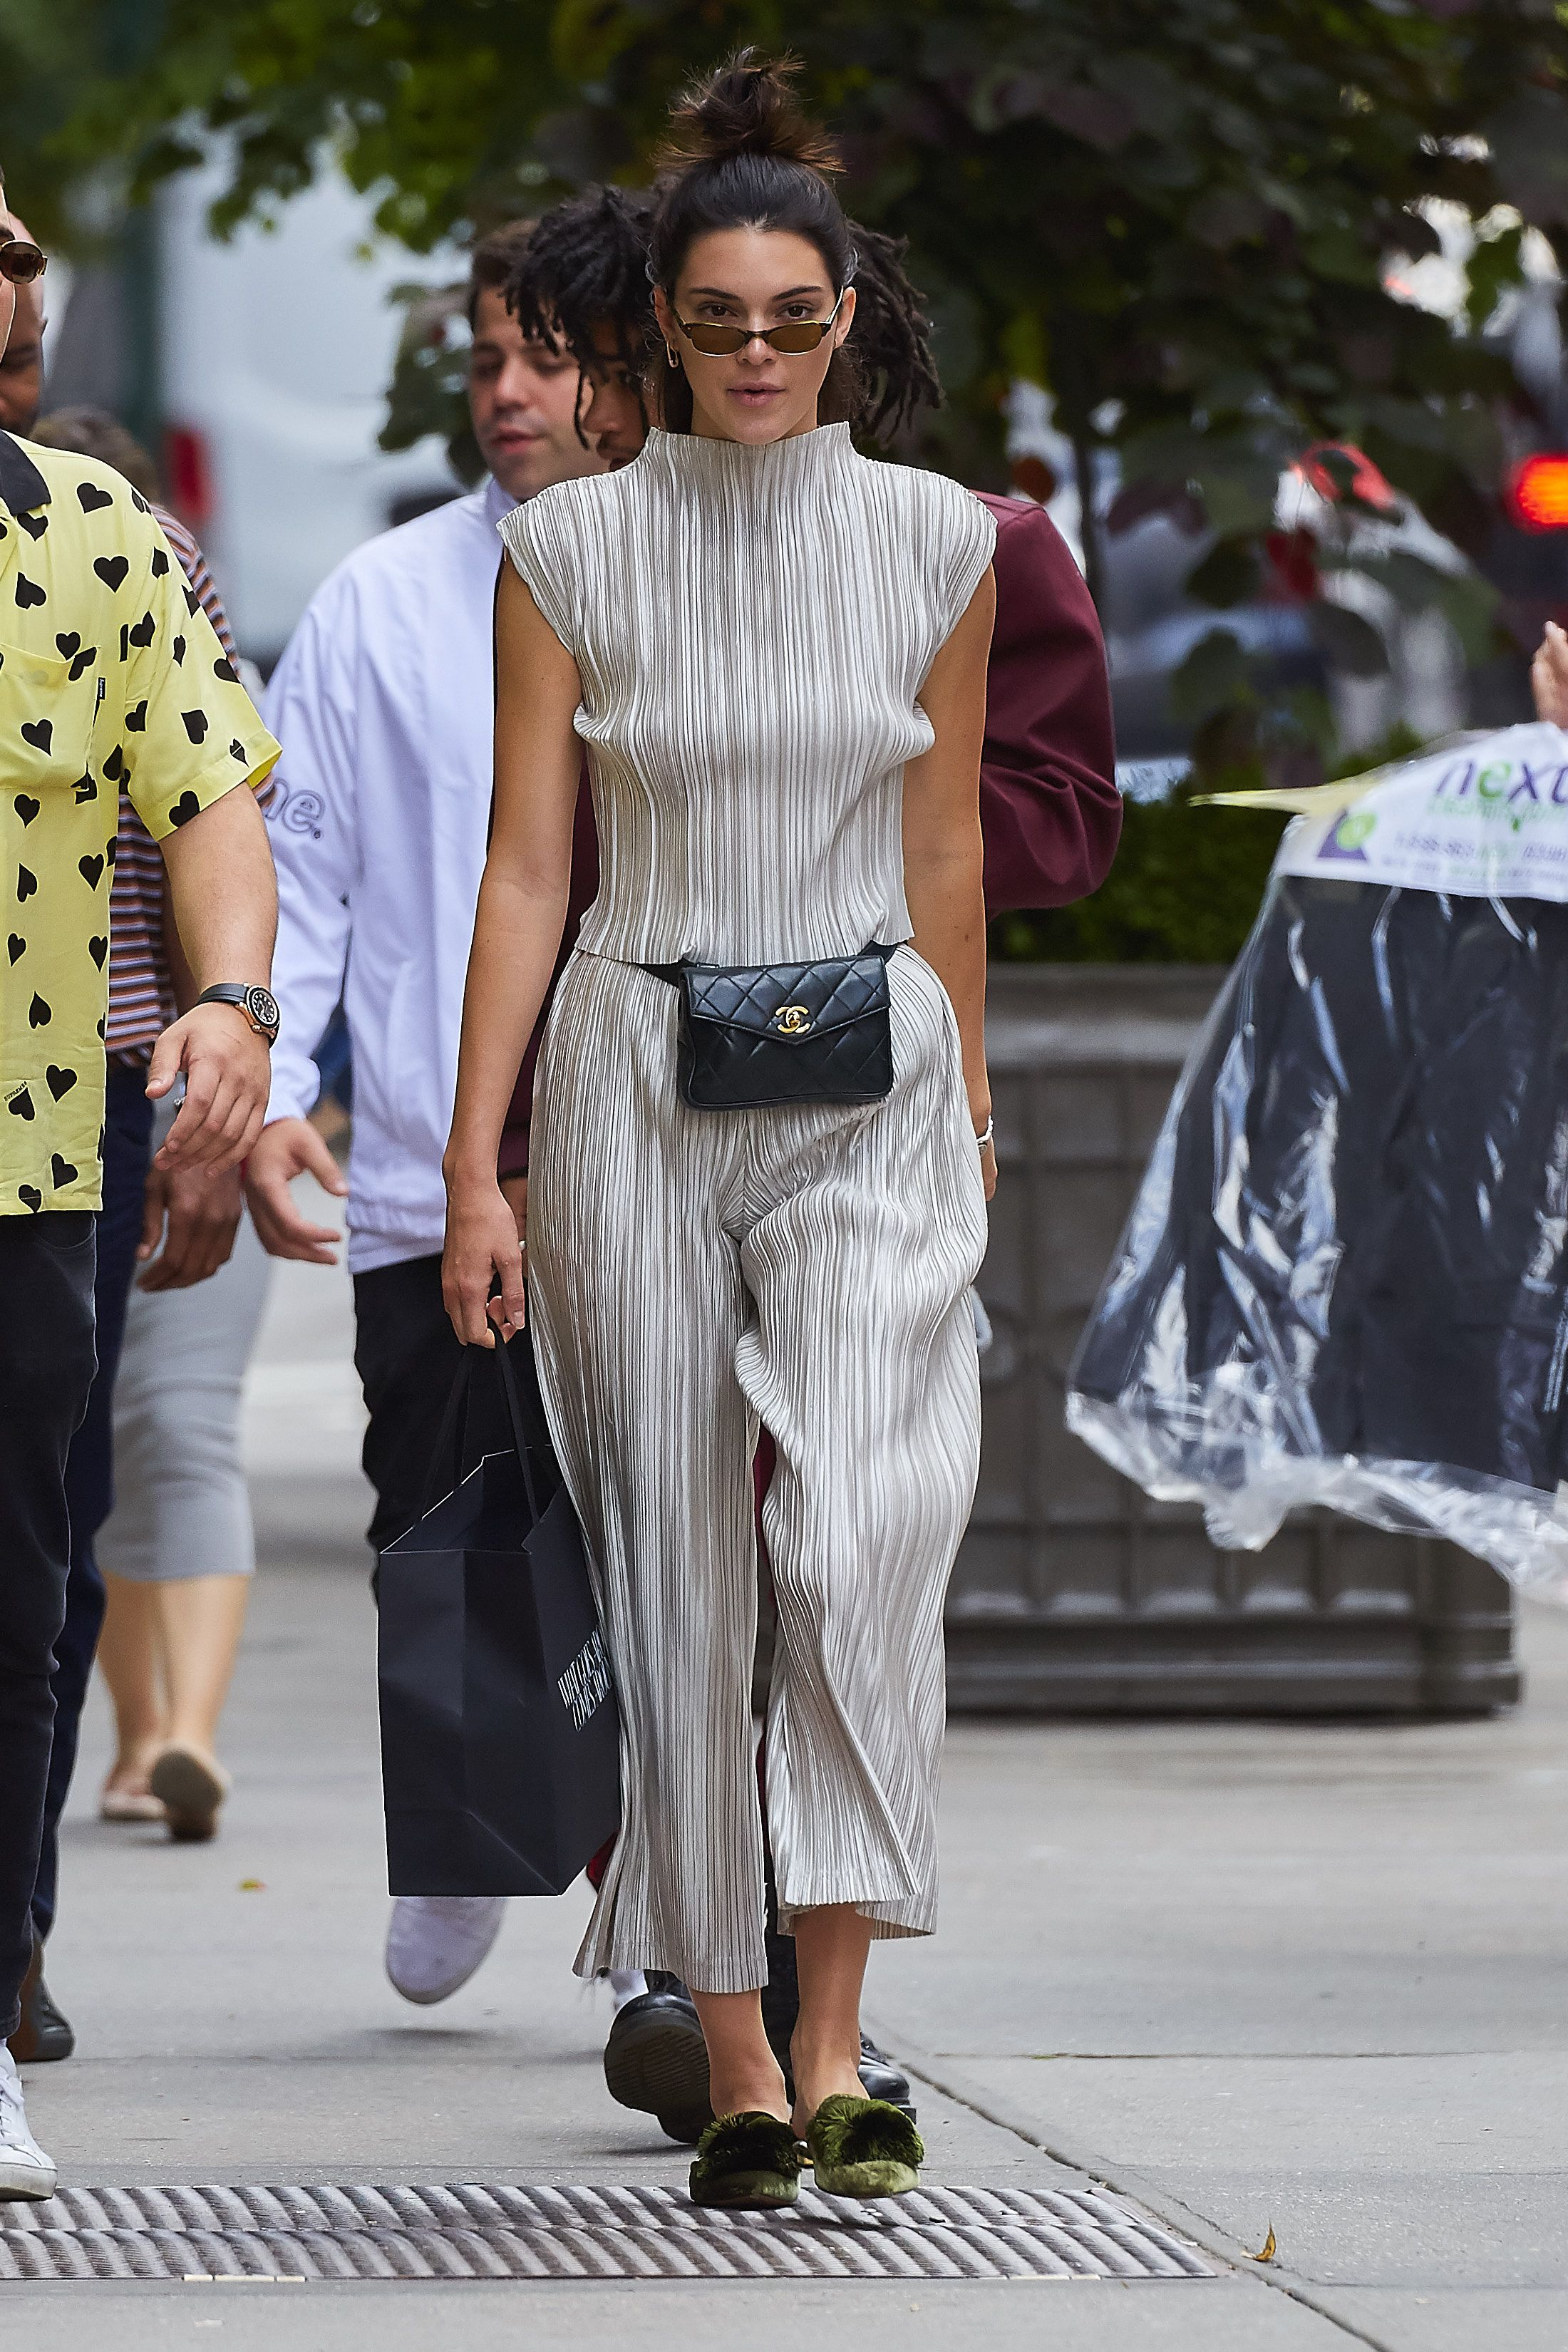 """<p>Also works with pleated evening co-ords, though a vinyl fanny packyou got as a freebie might not cut the mustard.</p><p><em data-redactor-tag=""""em"""" data-verified=""""redactor"""">Shop similar: Gucci, $1,050</em></p><p><span class=""""redactor-invisible-space"""" data-verified=""""redactor"""" data-redactor-tag=""""span"""" data-redactor-class=""""redactor-invisible-space""""><strong data-redactor-tag=""""strong"""" data-verified=""""redactor"""">BUY IT: <a href=""""https://www.net-a-porter.com/us/en/product/897735/Gucci/gg-marmont-quilted-leather-belt-bag"""" target=""""_blank"""" data-tracking-id=""""recirc-text-link"""">net-a-porter.com</a>.</strong></span><br></p>"""